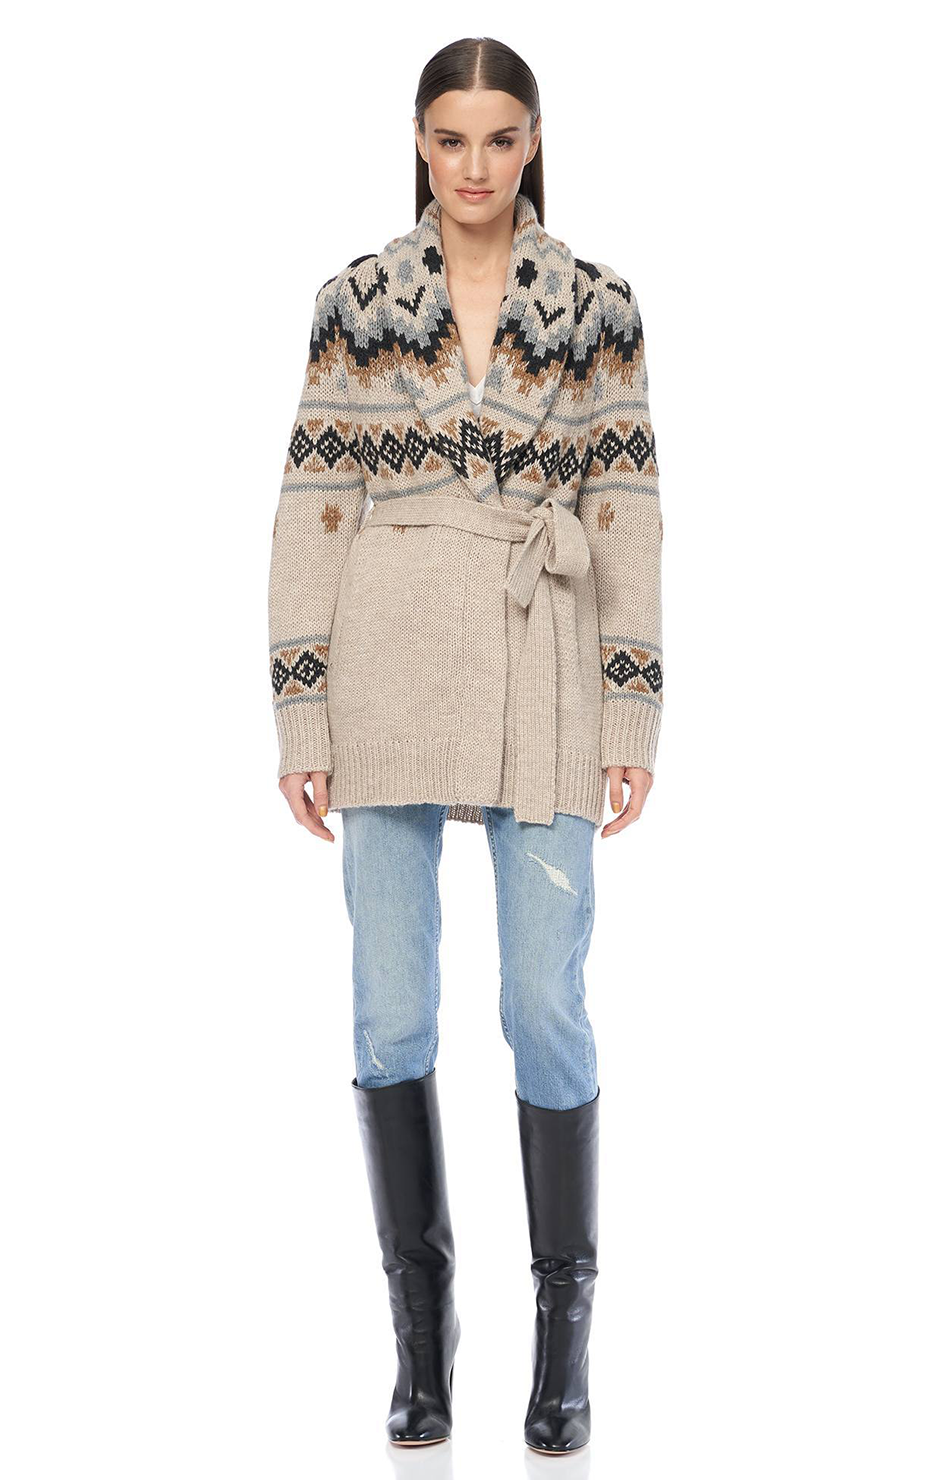 Ratchell Cardigan - Sand/Multi